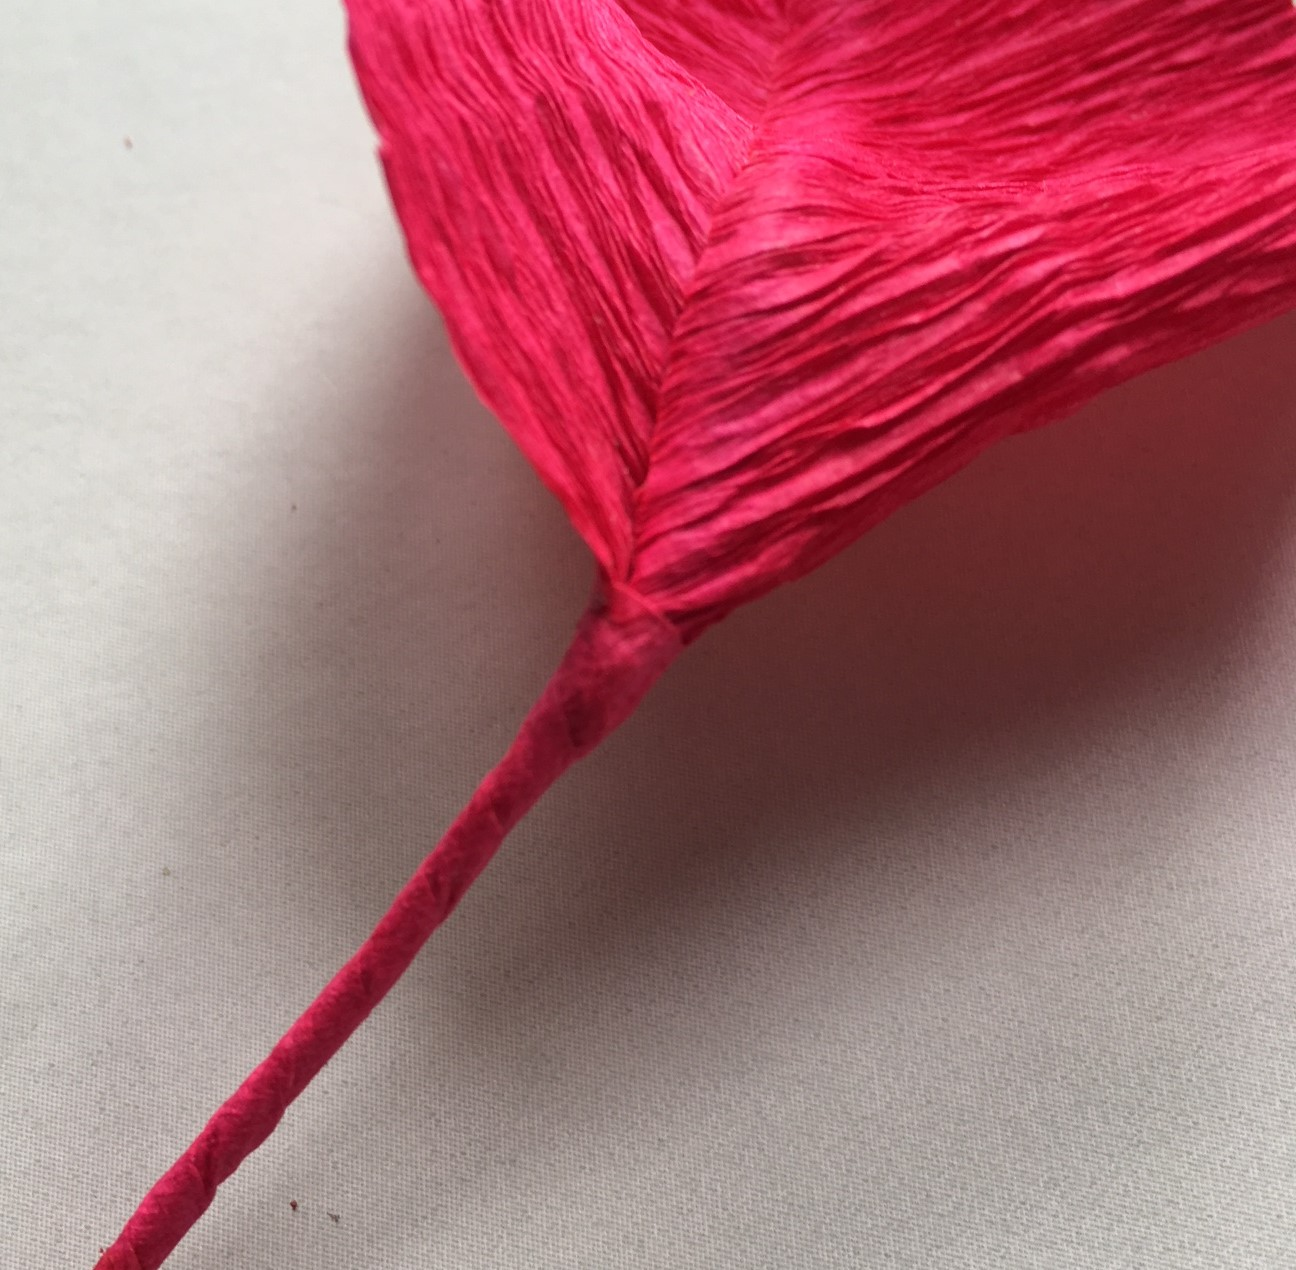 the stem ot the red crepe paper leaf, covered with red crepe paper too